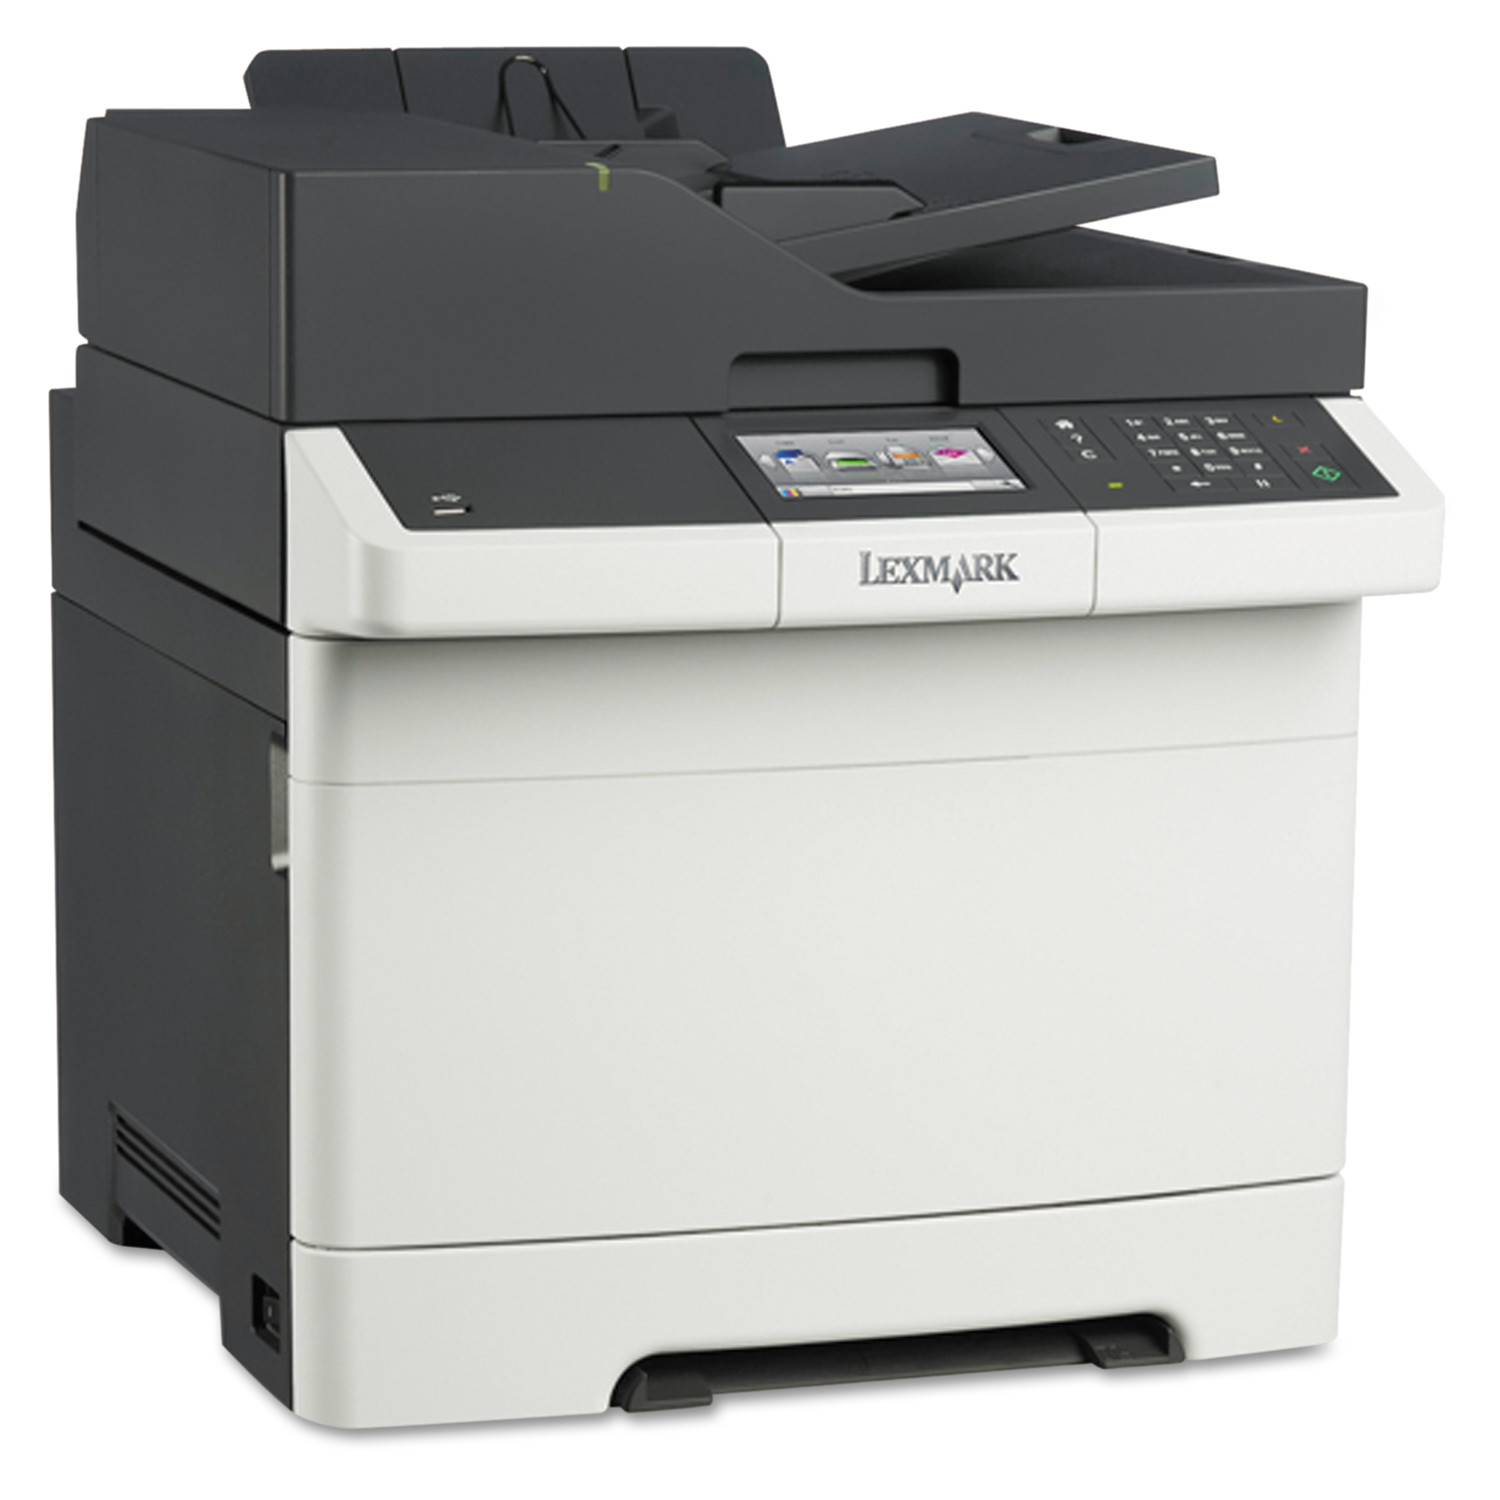 Lexmark CX410de Multifunction Color Laser Printer, Copy/Fax/Print/Scan